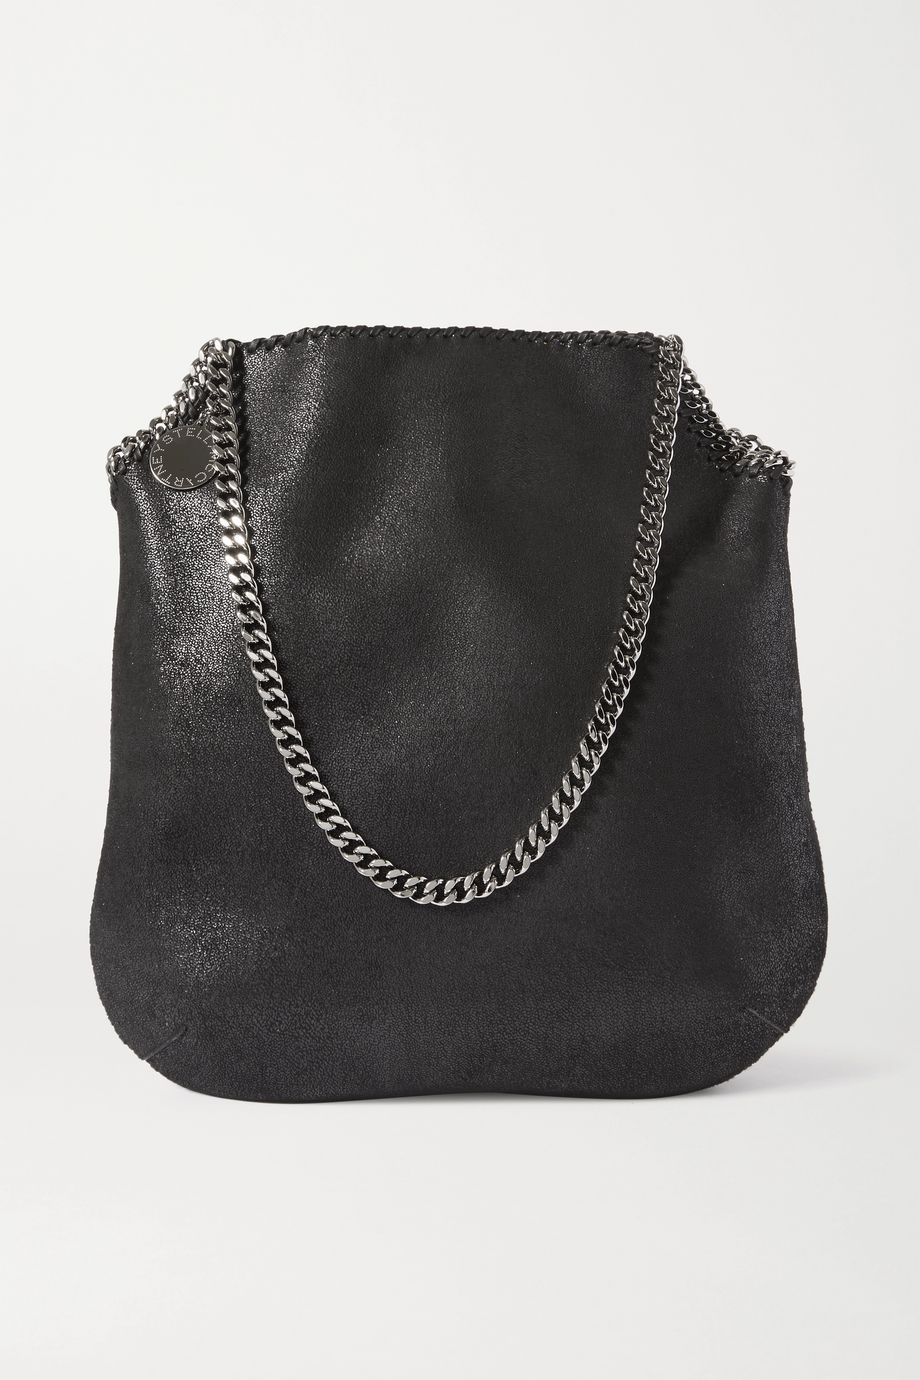 Stella McCartney The Falabella large vegetarian brushed-leather shoulder bag